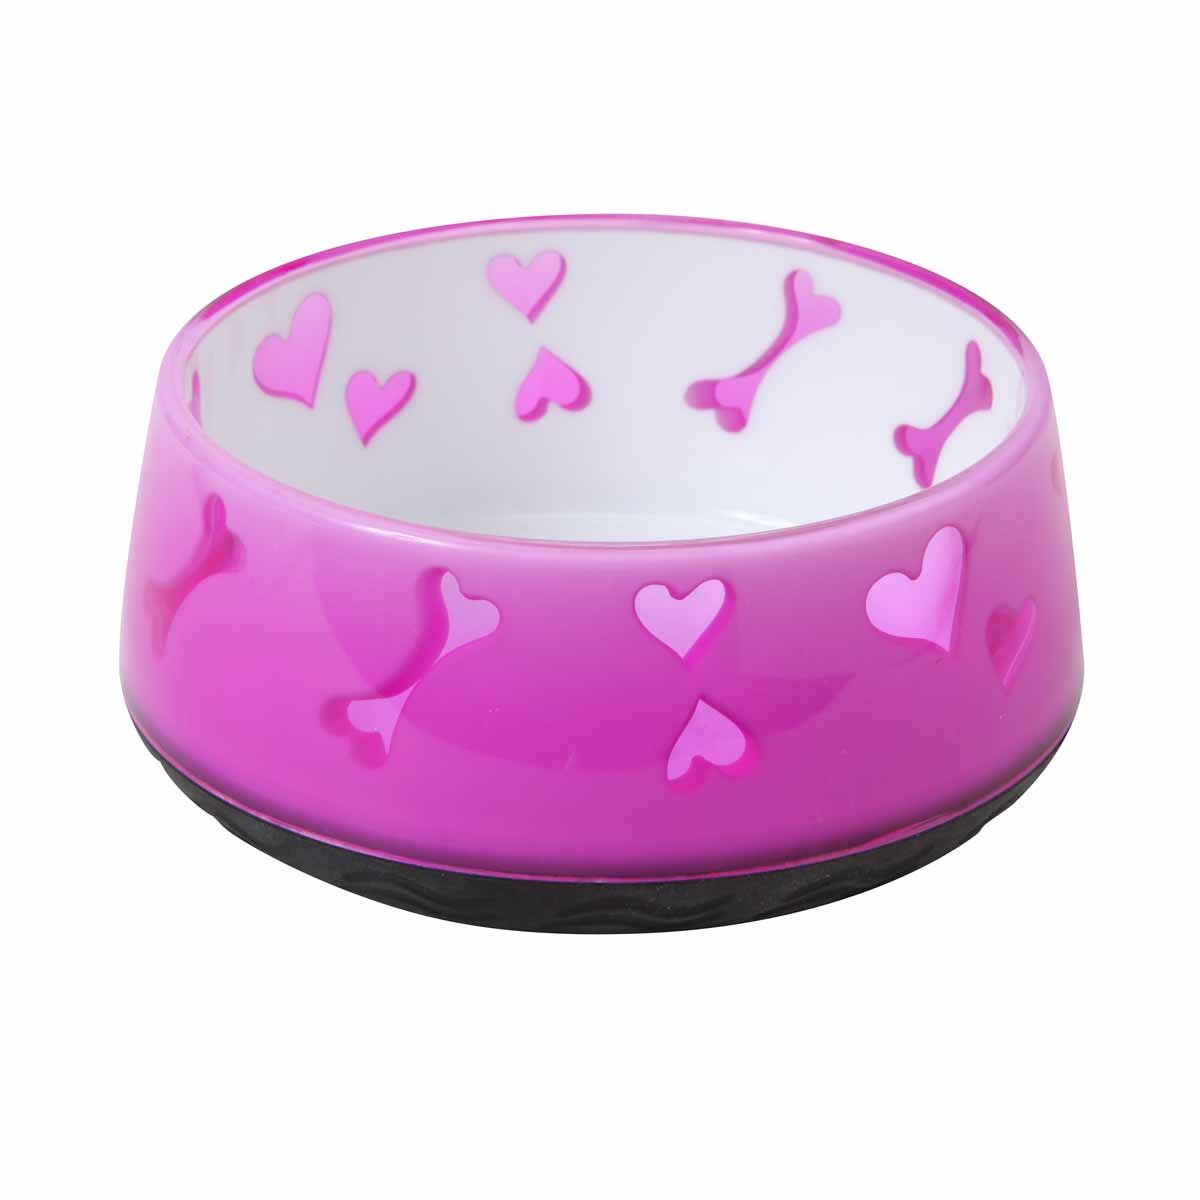 Dogit Home Non-Skid Pet Bowl, 10.1-Ounce, Pink